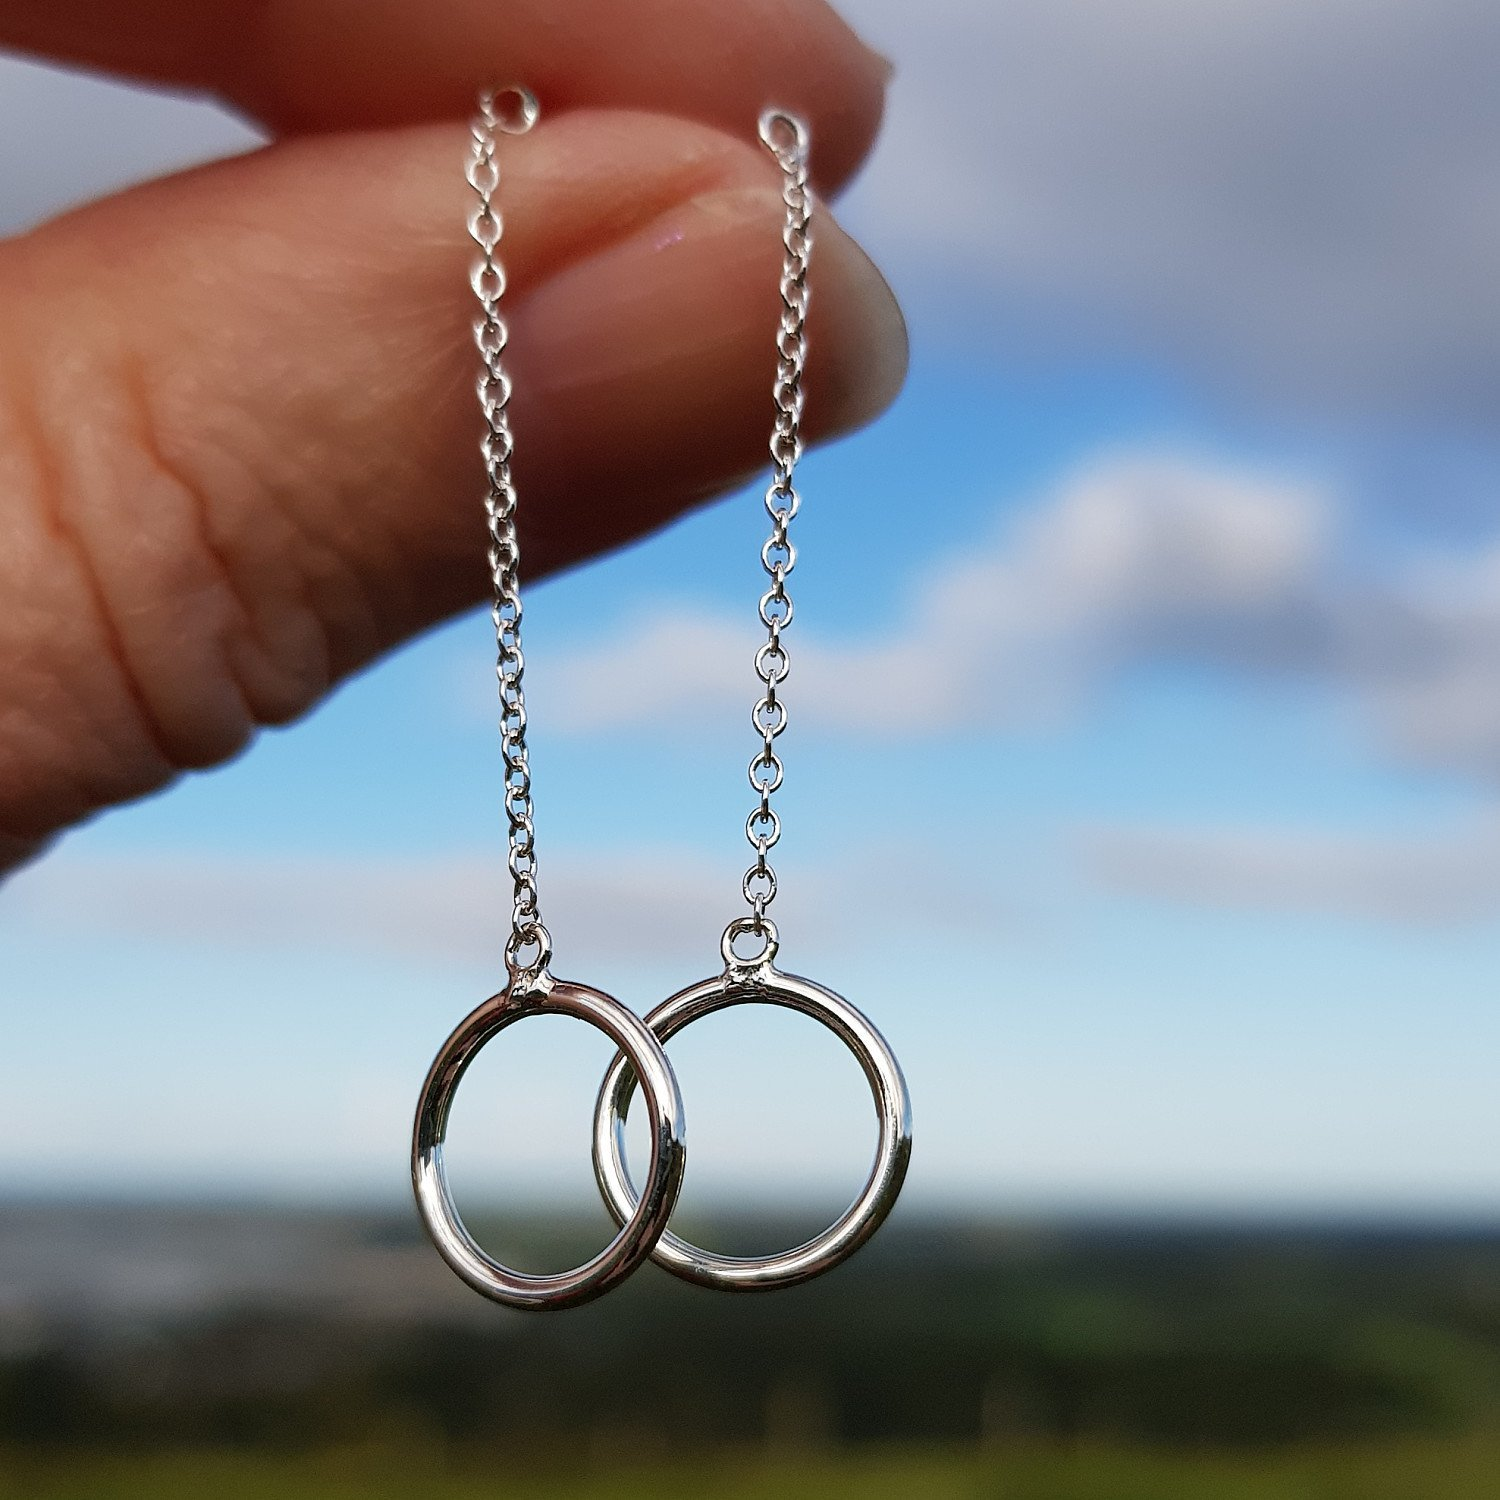 9ct Gold and Silver Drop/Dangly Earring Collection from Callibeau Jewellery